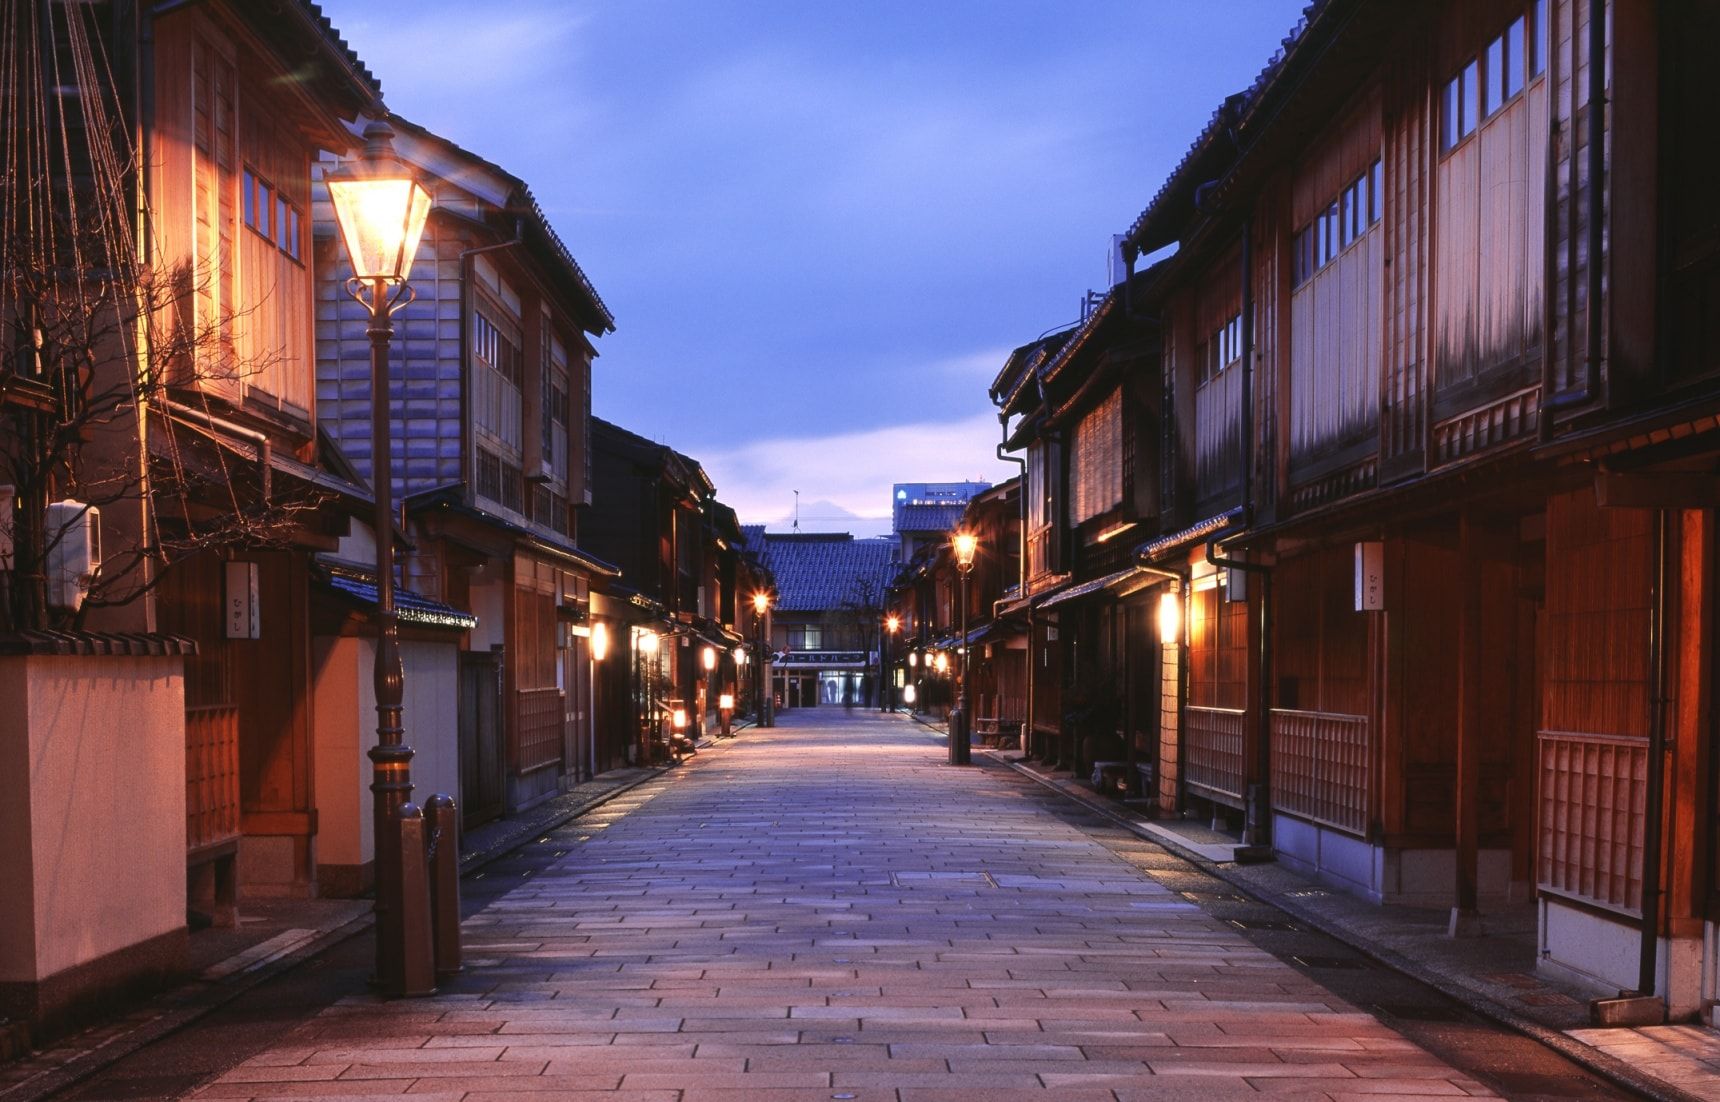 Japan's 8 Best-Preserved Castle Towns